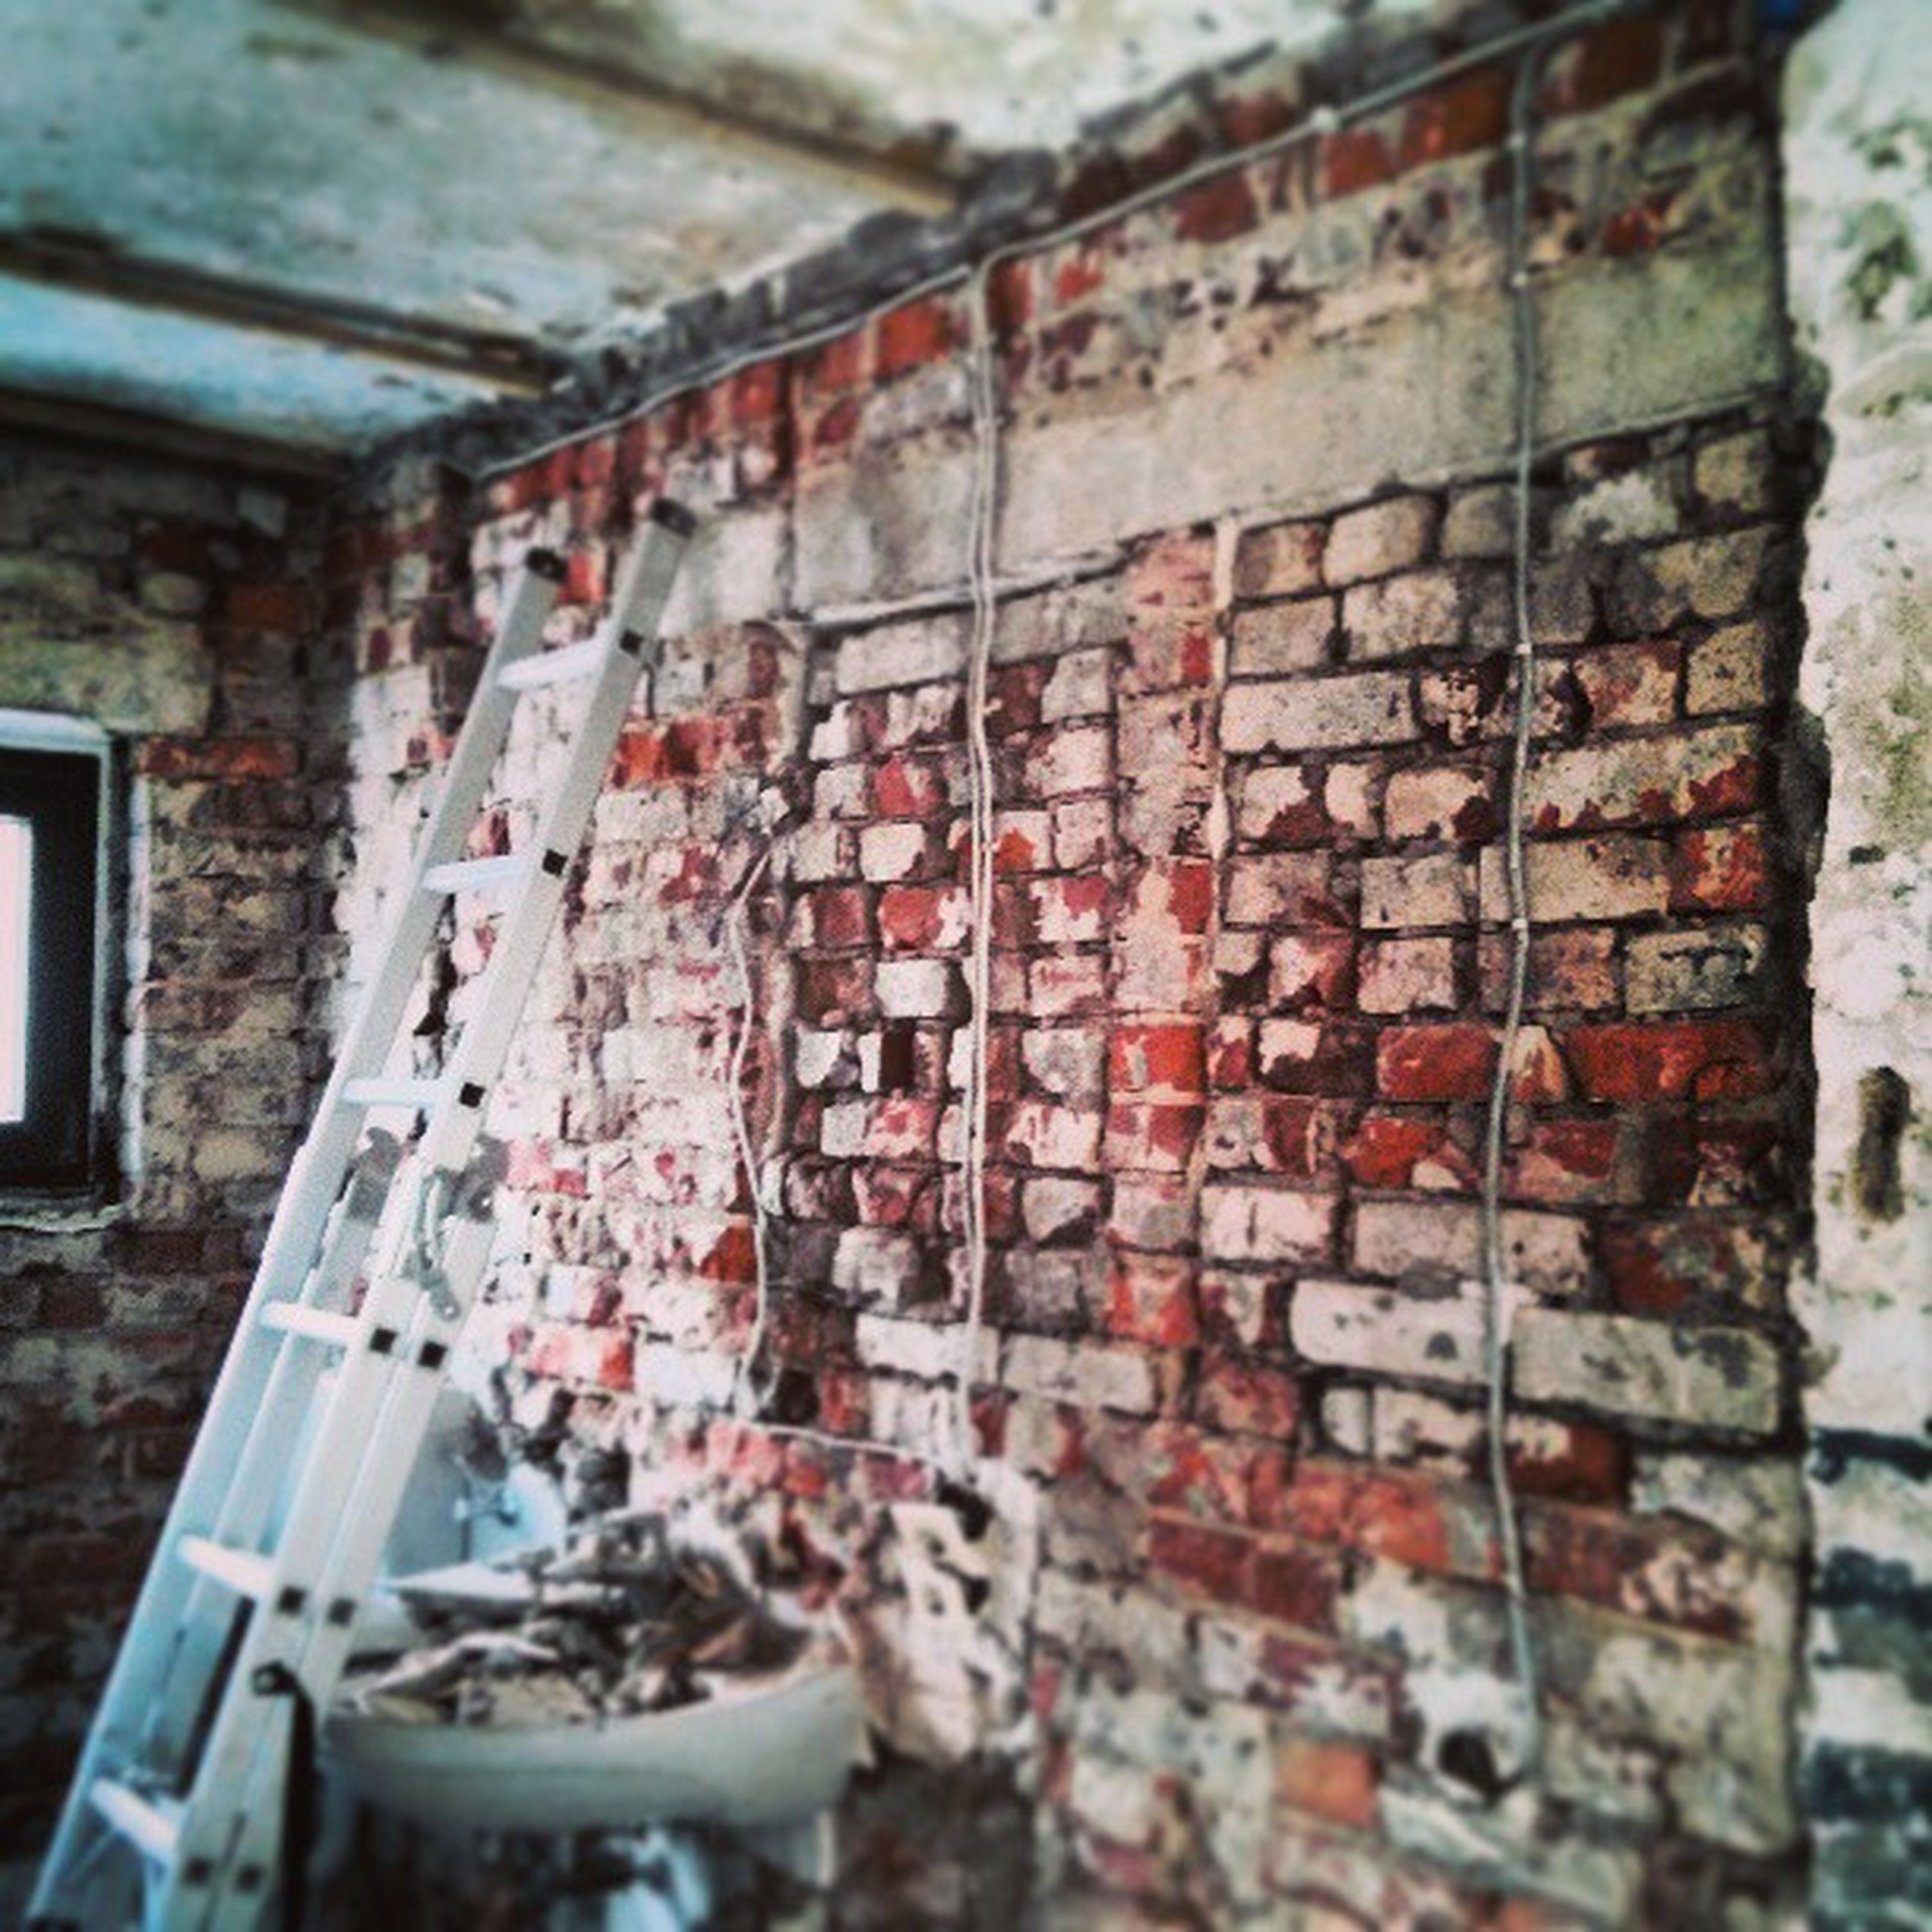 architecture, built structure, abandoned, damaged, deterioration, obsolete, old, weathered, run-down, building exterior, window, wall - building feature, brick wall, indoors, bad condition, house, messy, destruction, no people, day